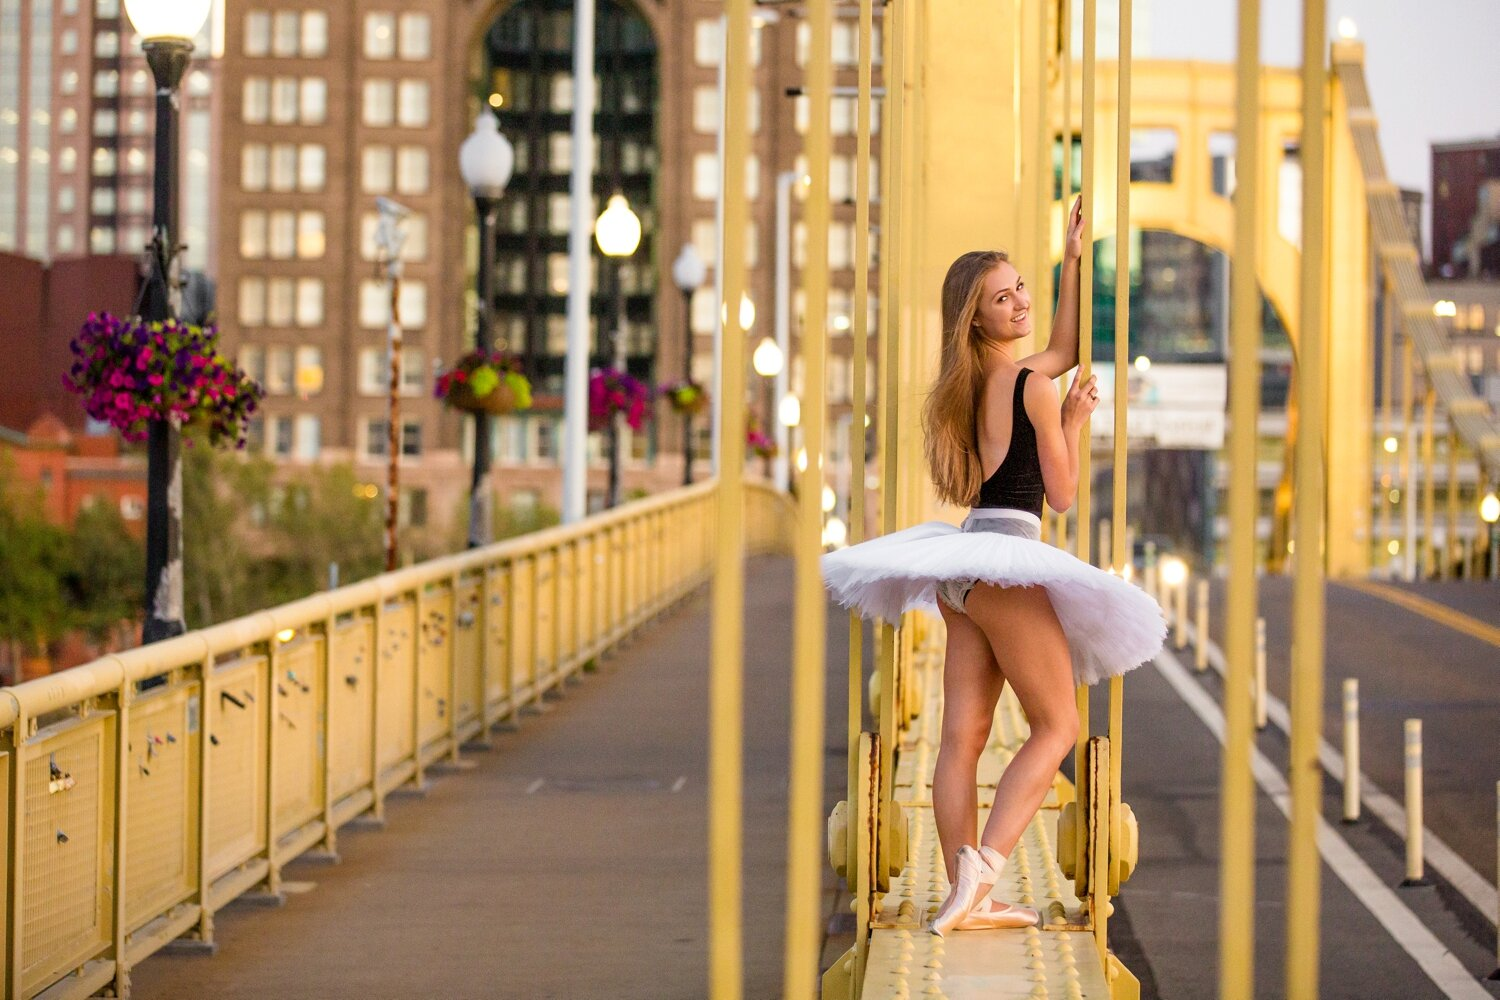 pittsburgh senior photographer, dowtown pittsburgh senior photos, ballerina senior photos, locations in pittsburgh for senior photos